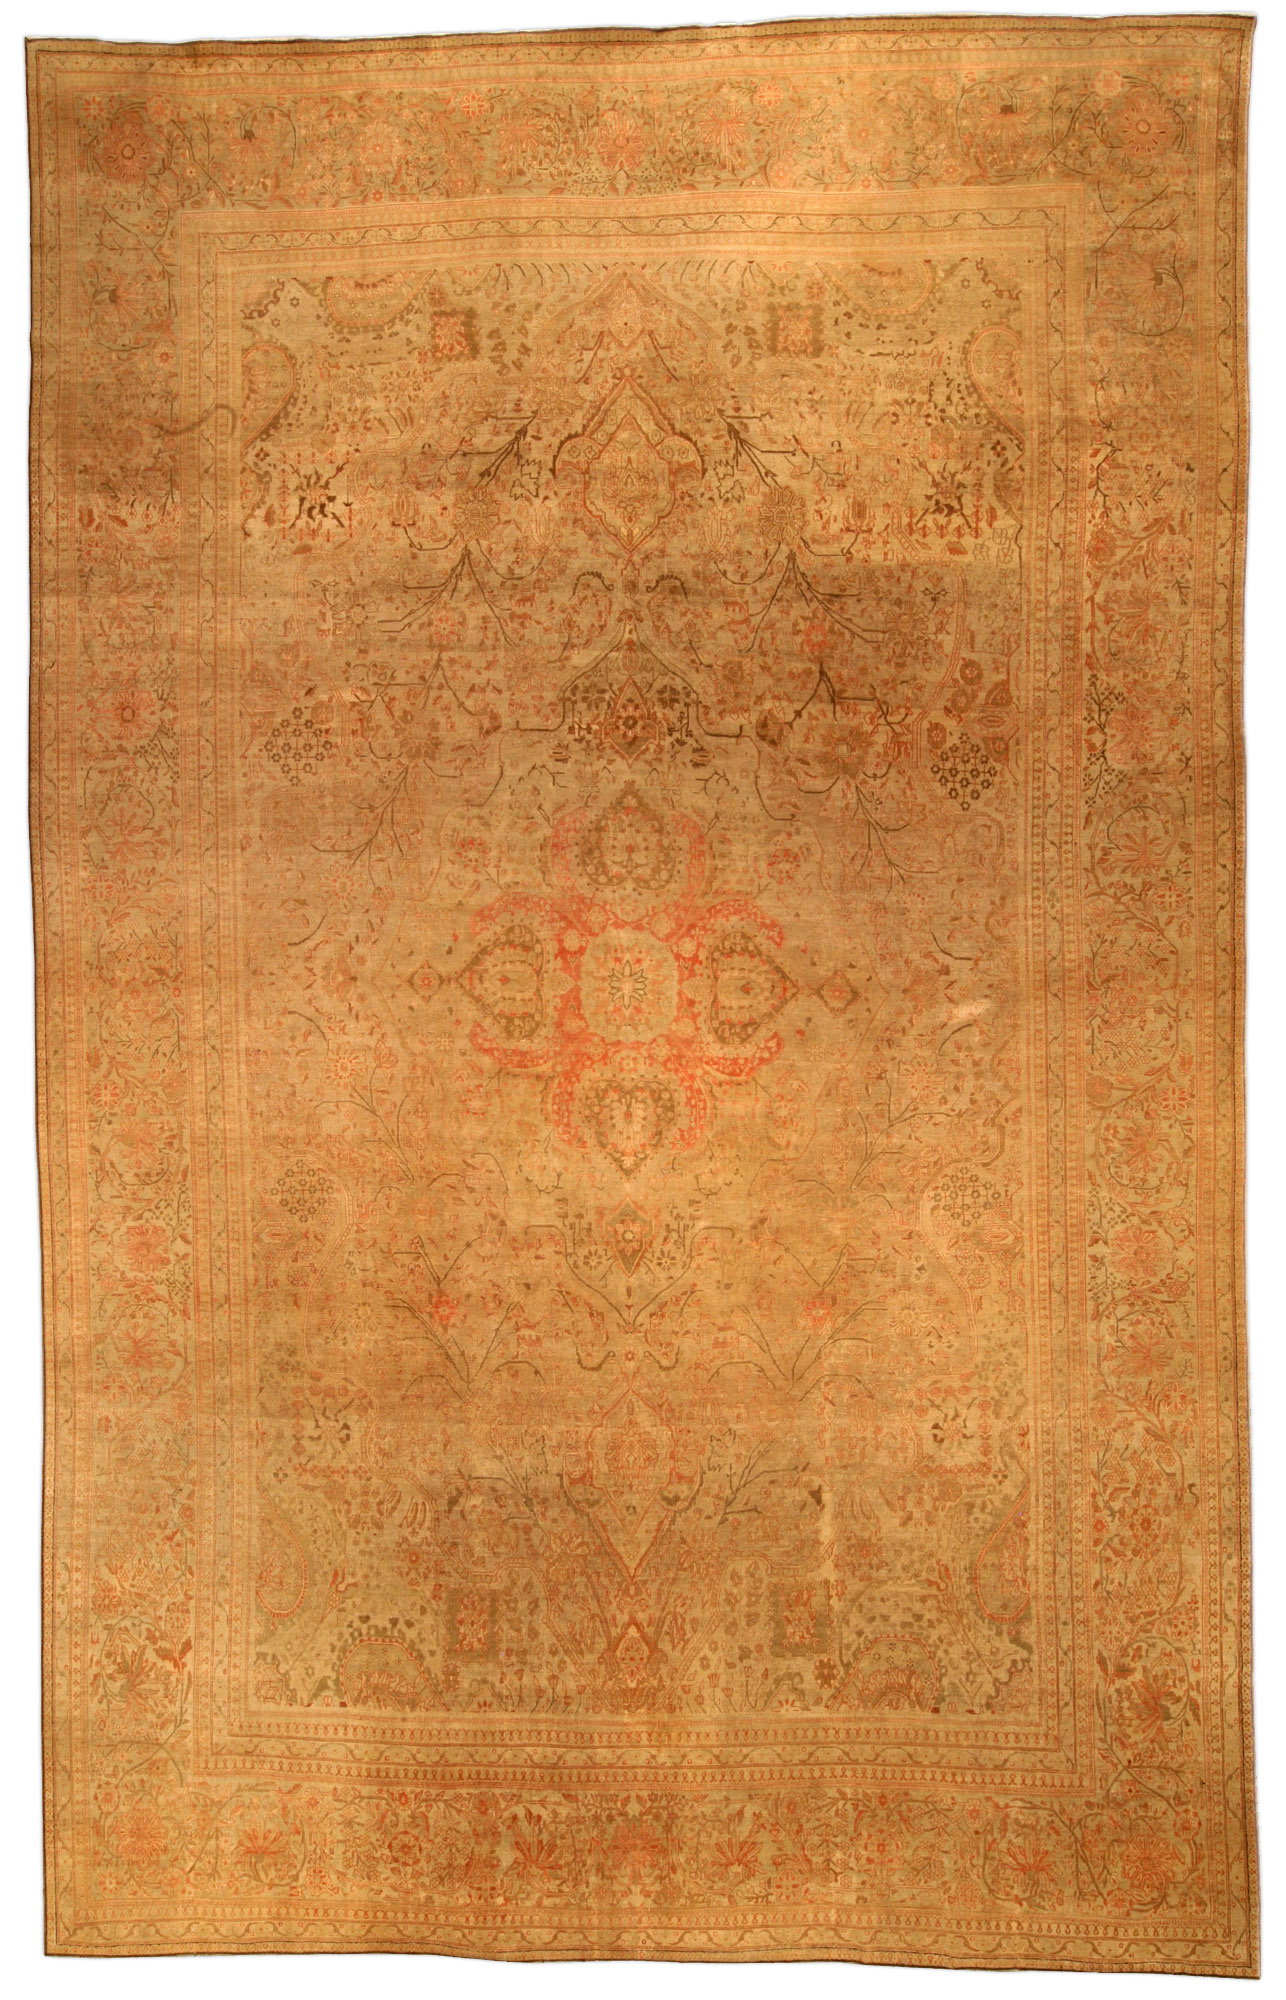 Kashan Rugs Area Carpets For Sale Antique Oriental